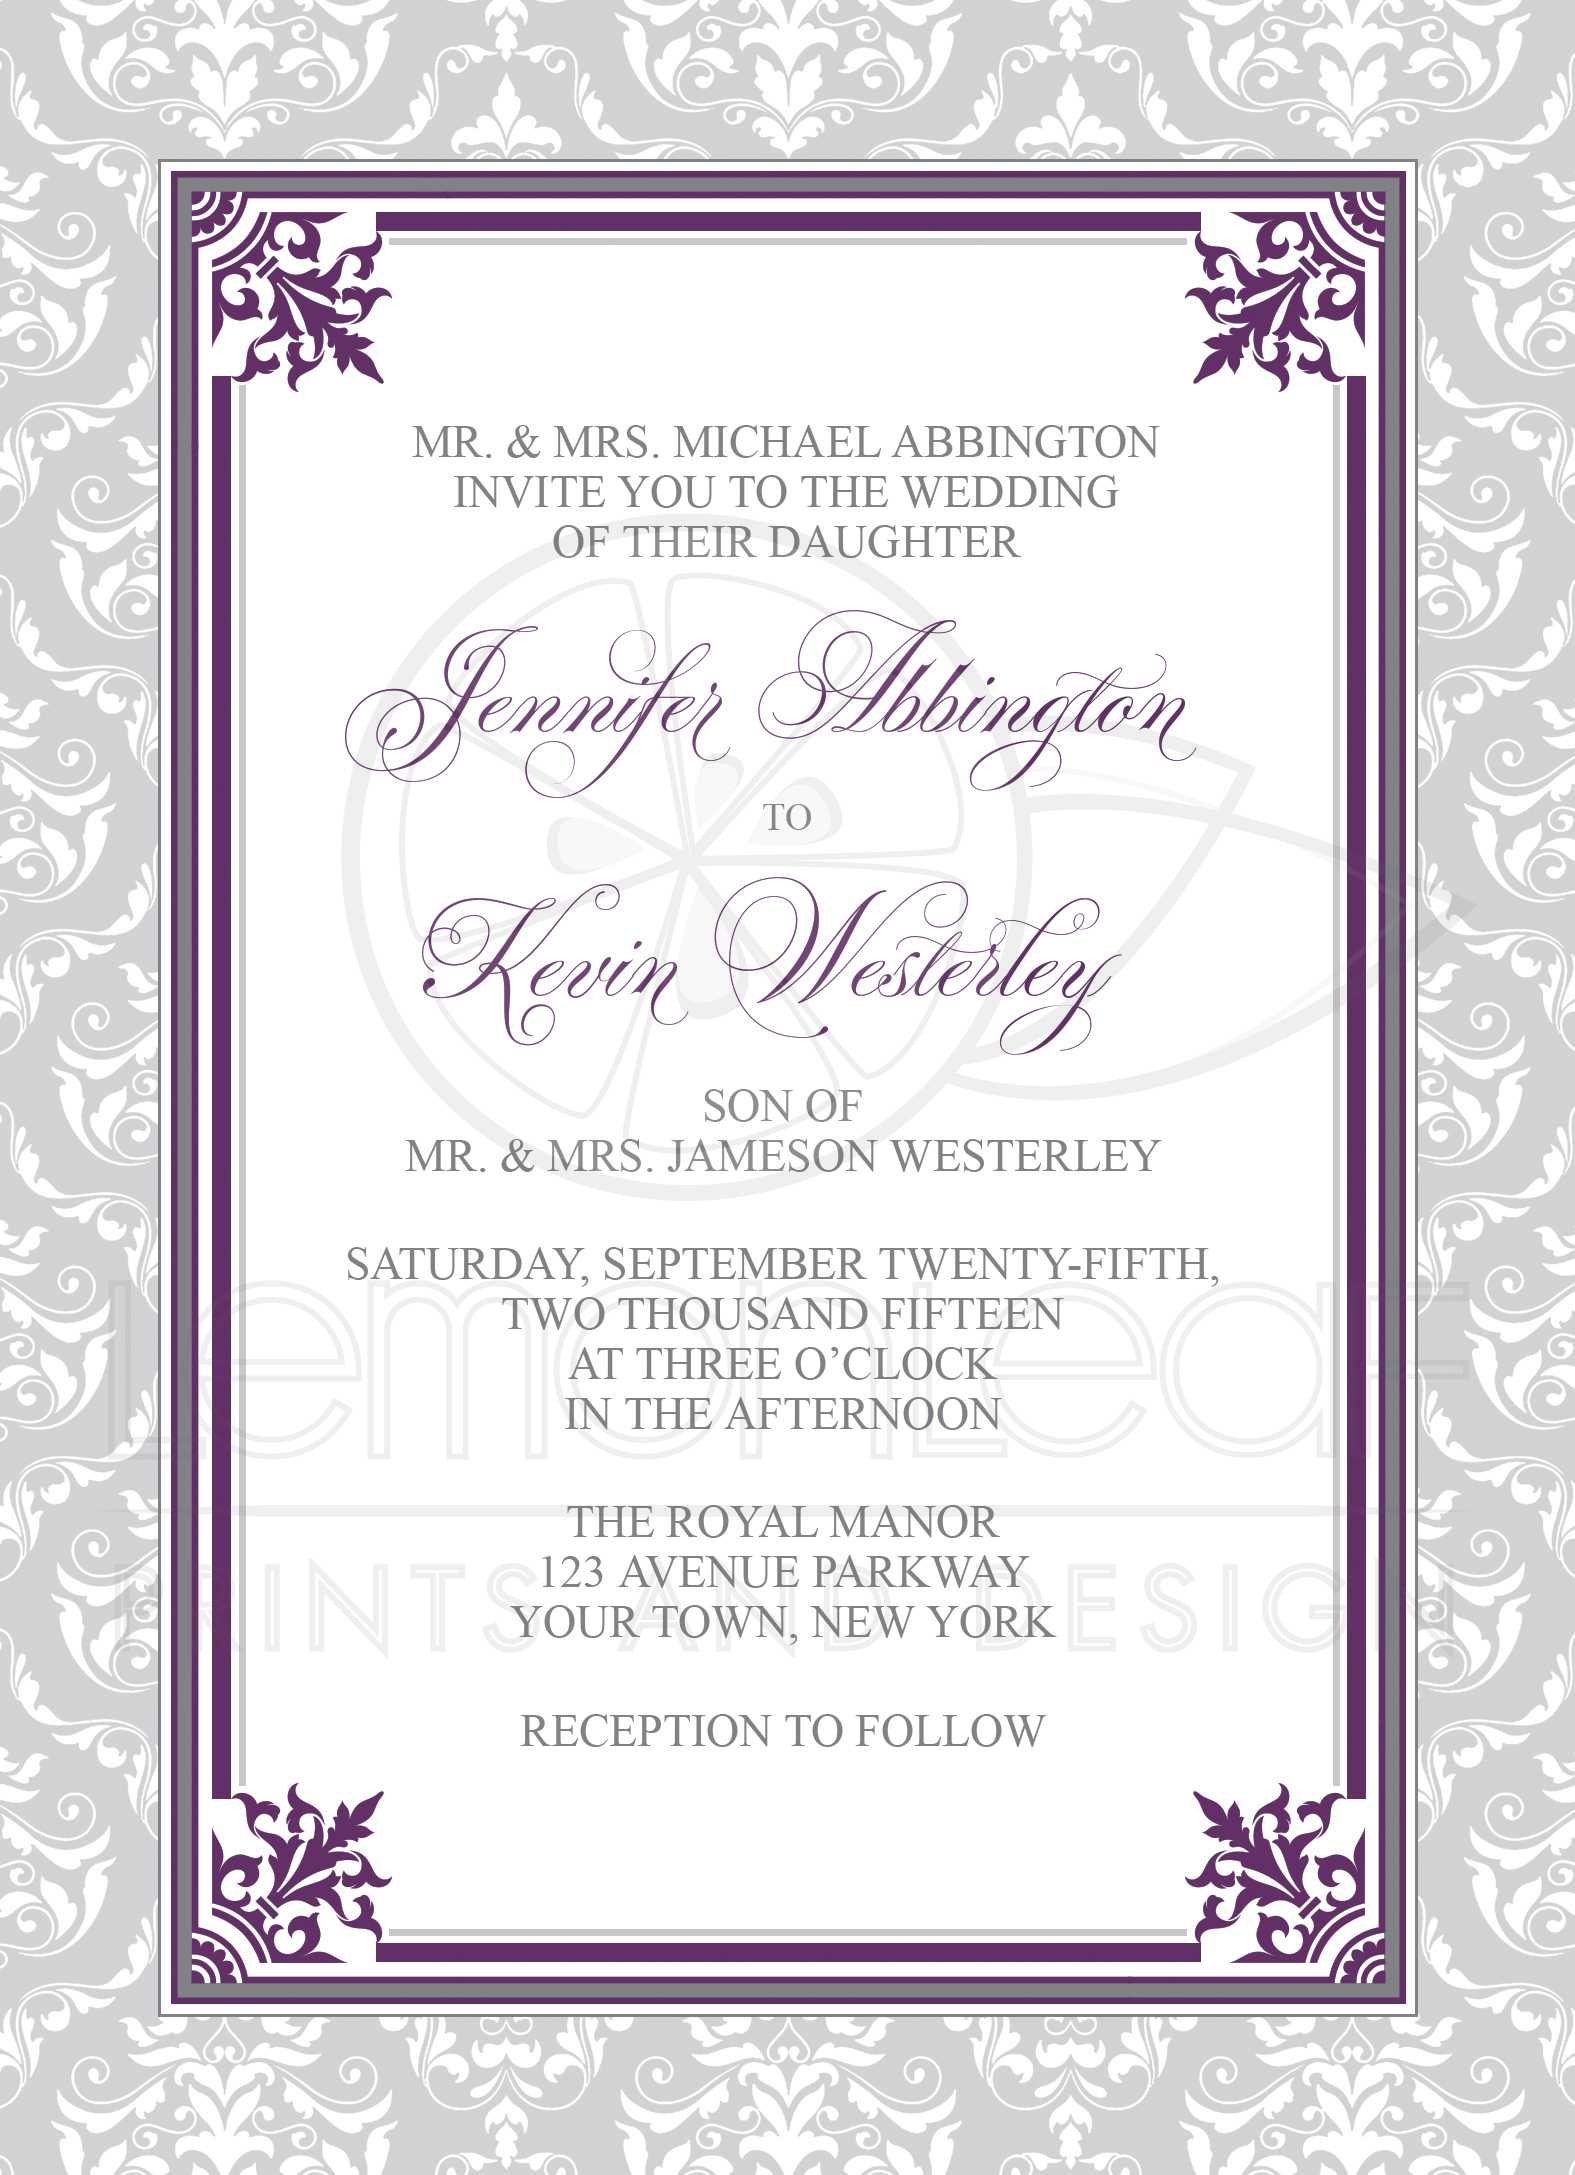 wedding invitations plum purple and gray elegant damask - Damask Wedding Invitations